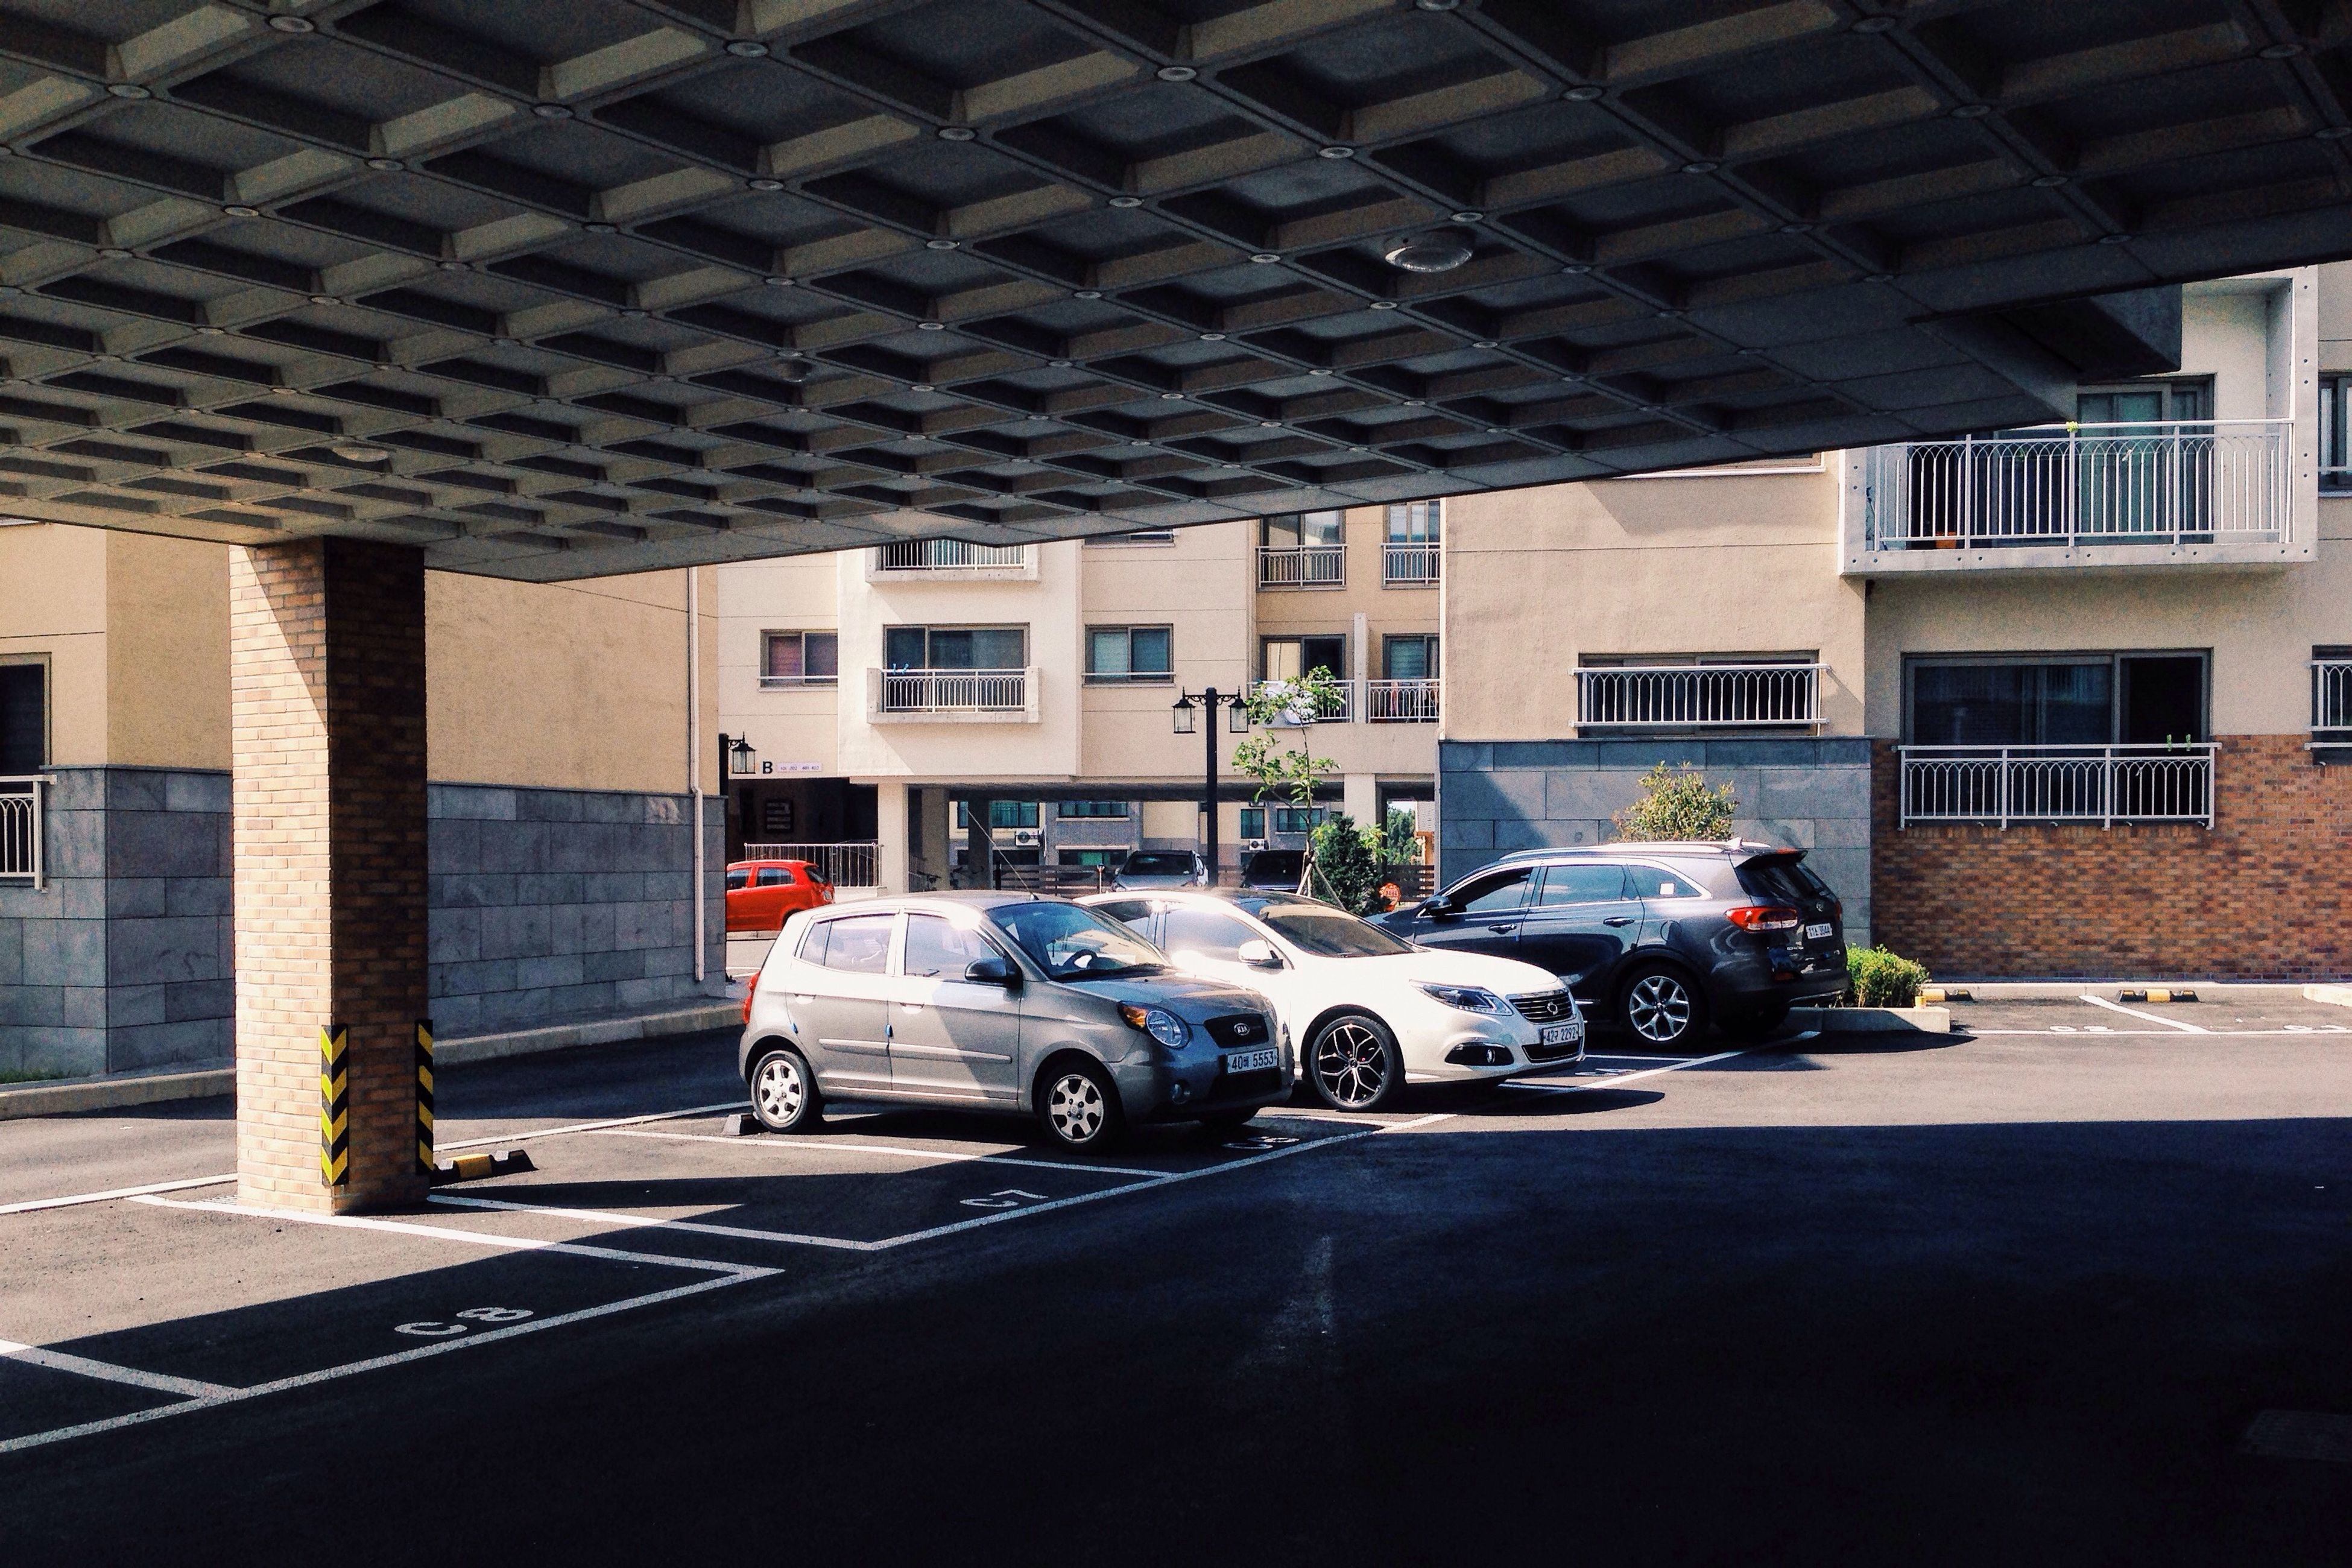 land vehicle, architecture, street, mode of transport, built structure, road, parked, parking, city, stationary, motorcycle, city street, city life, residential building, day, outdoors, parking lot, lifestyles